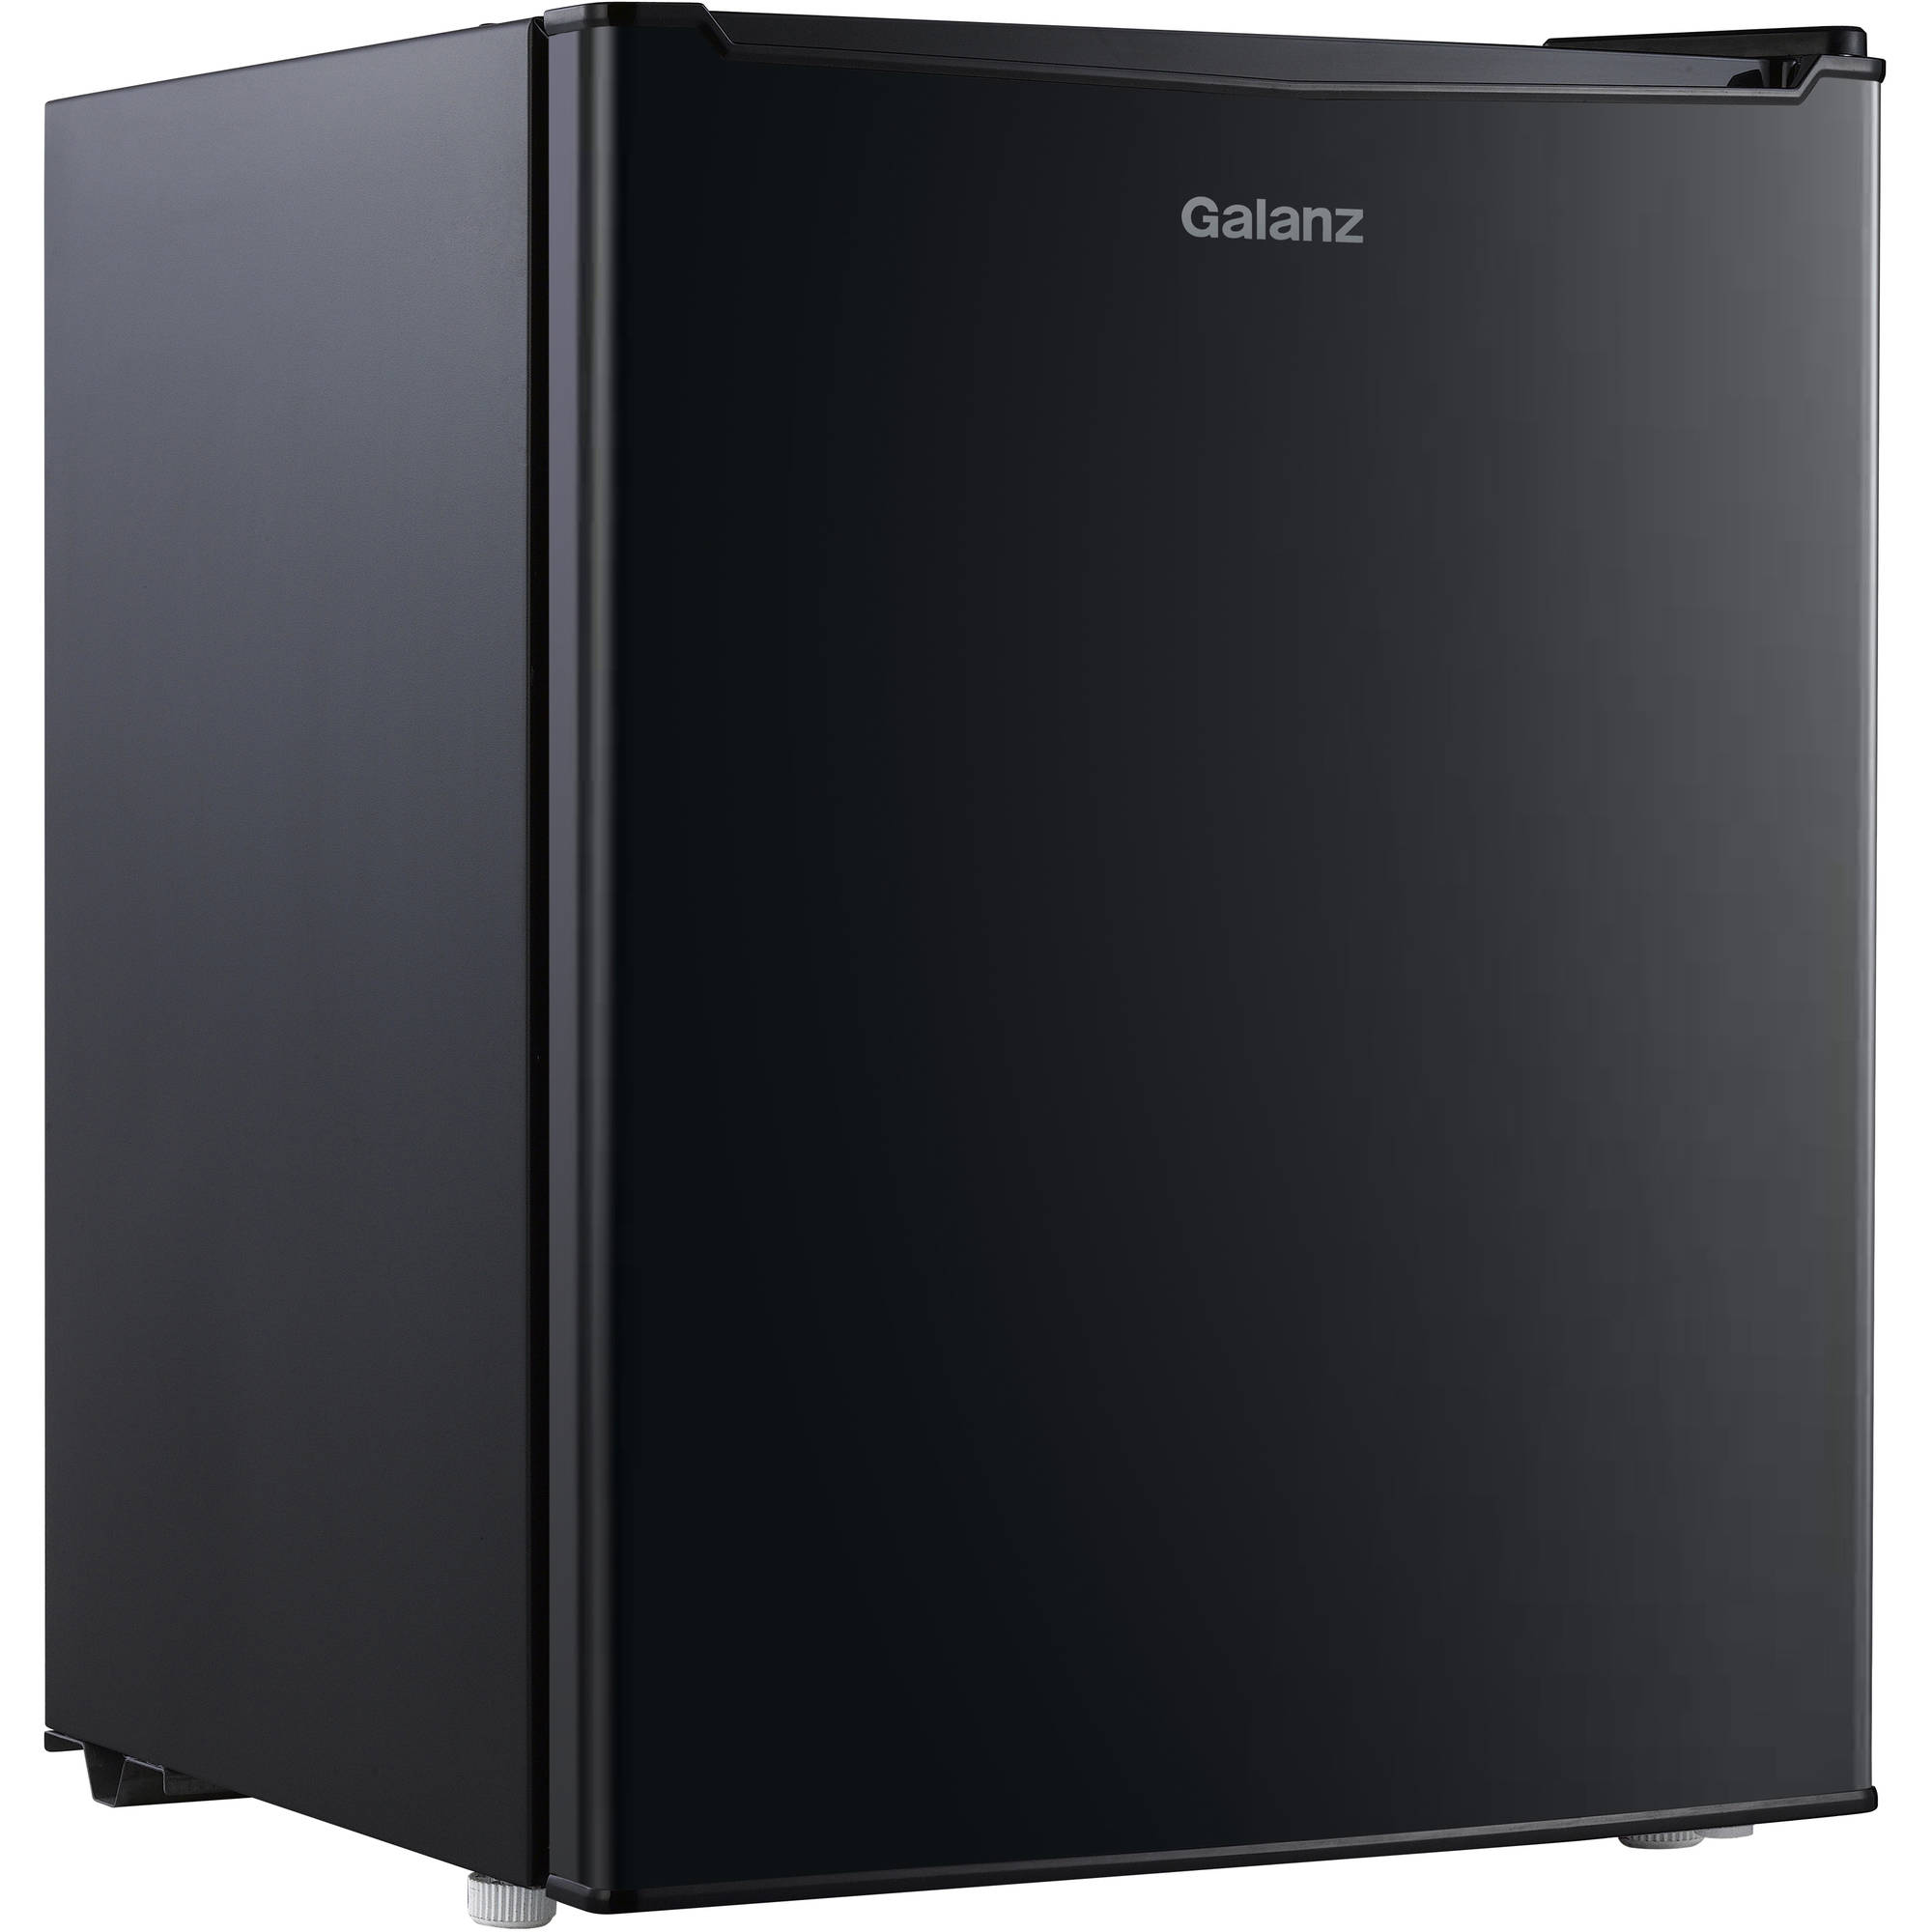 Galanz 2.7 Cu Ft Single Door Mini Fridge GL27BK, Black